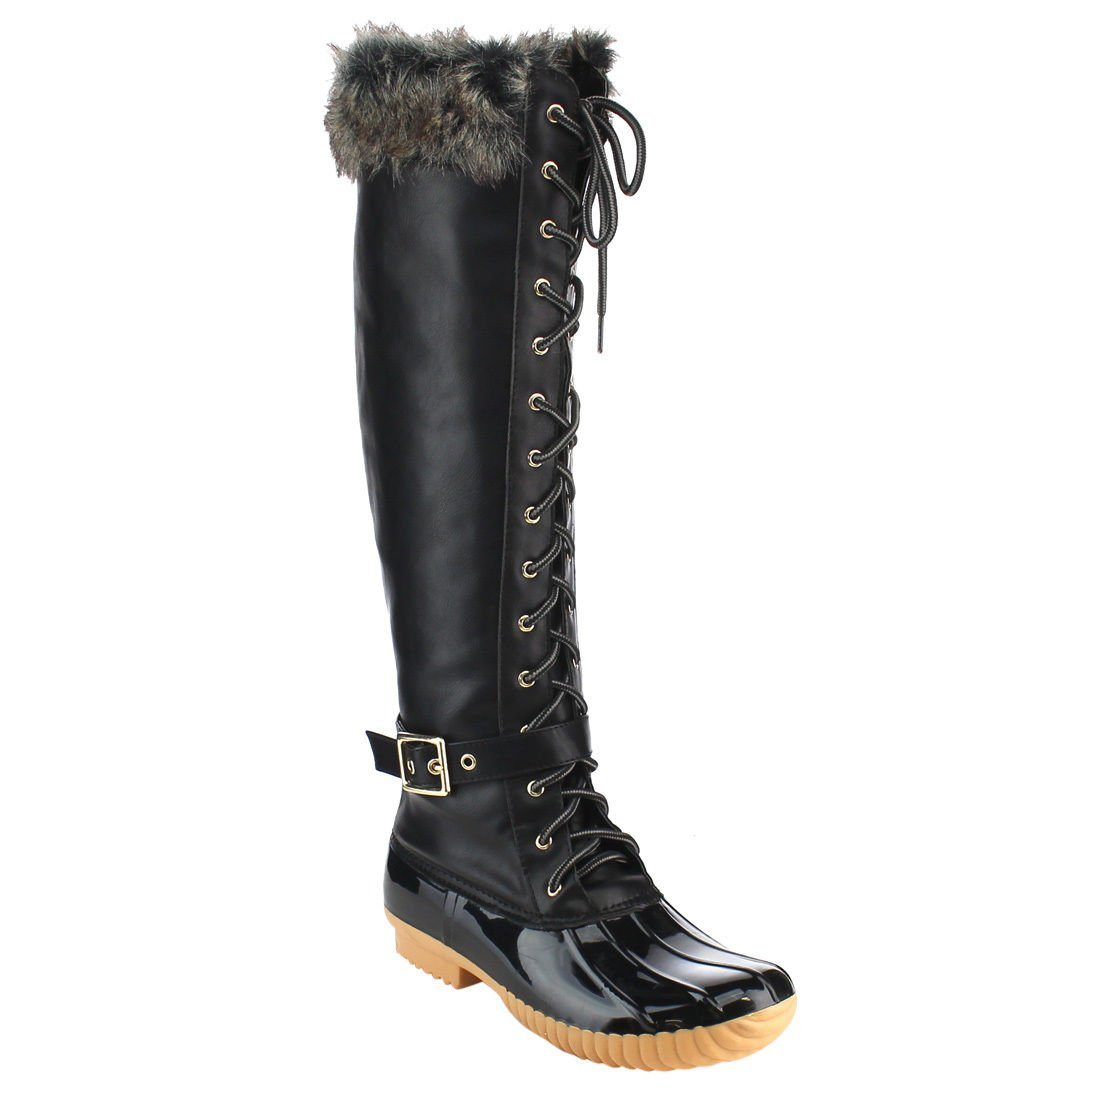 Women's Knee High Winter Boots Lace up Insulated Fur Cuff Trim Waterproof Rubber Sole Duck Snow Rain Shoe Boots B074FTSF9H 5.5 B(M) US|Black Pvc